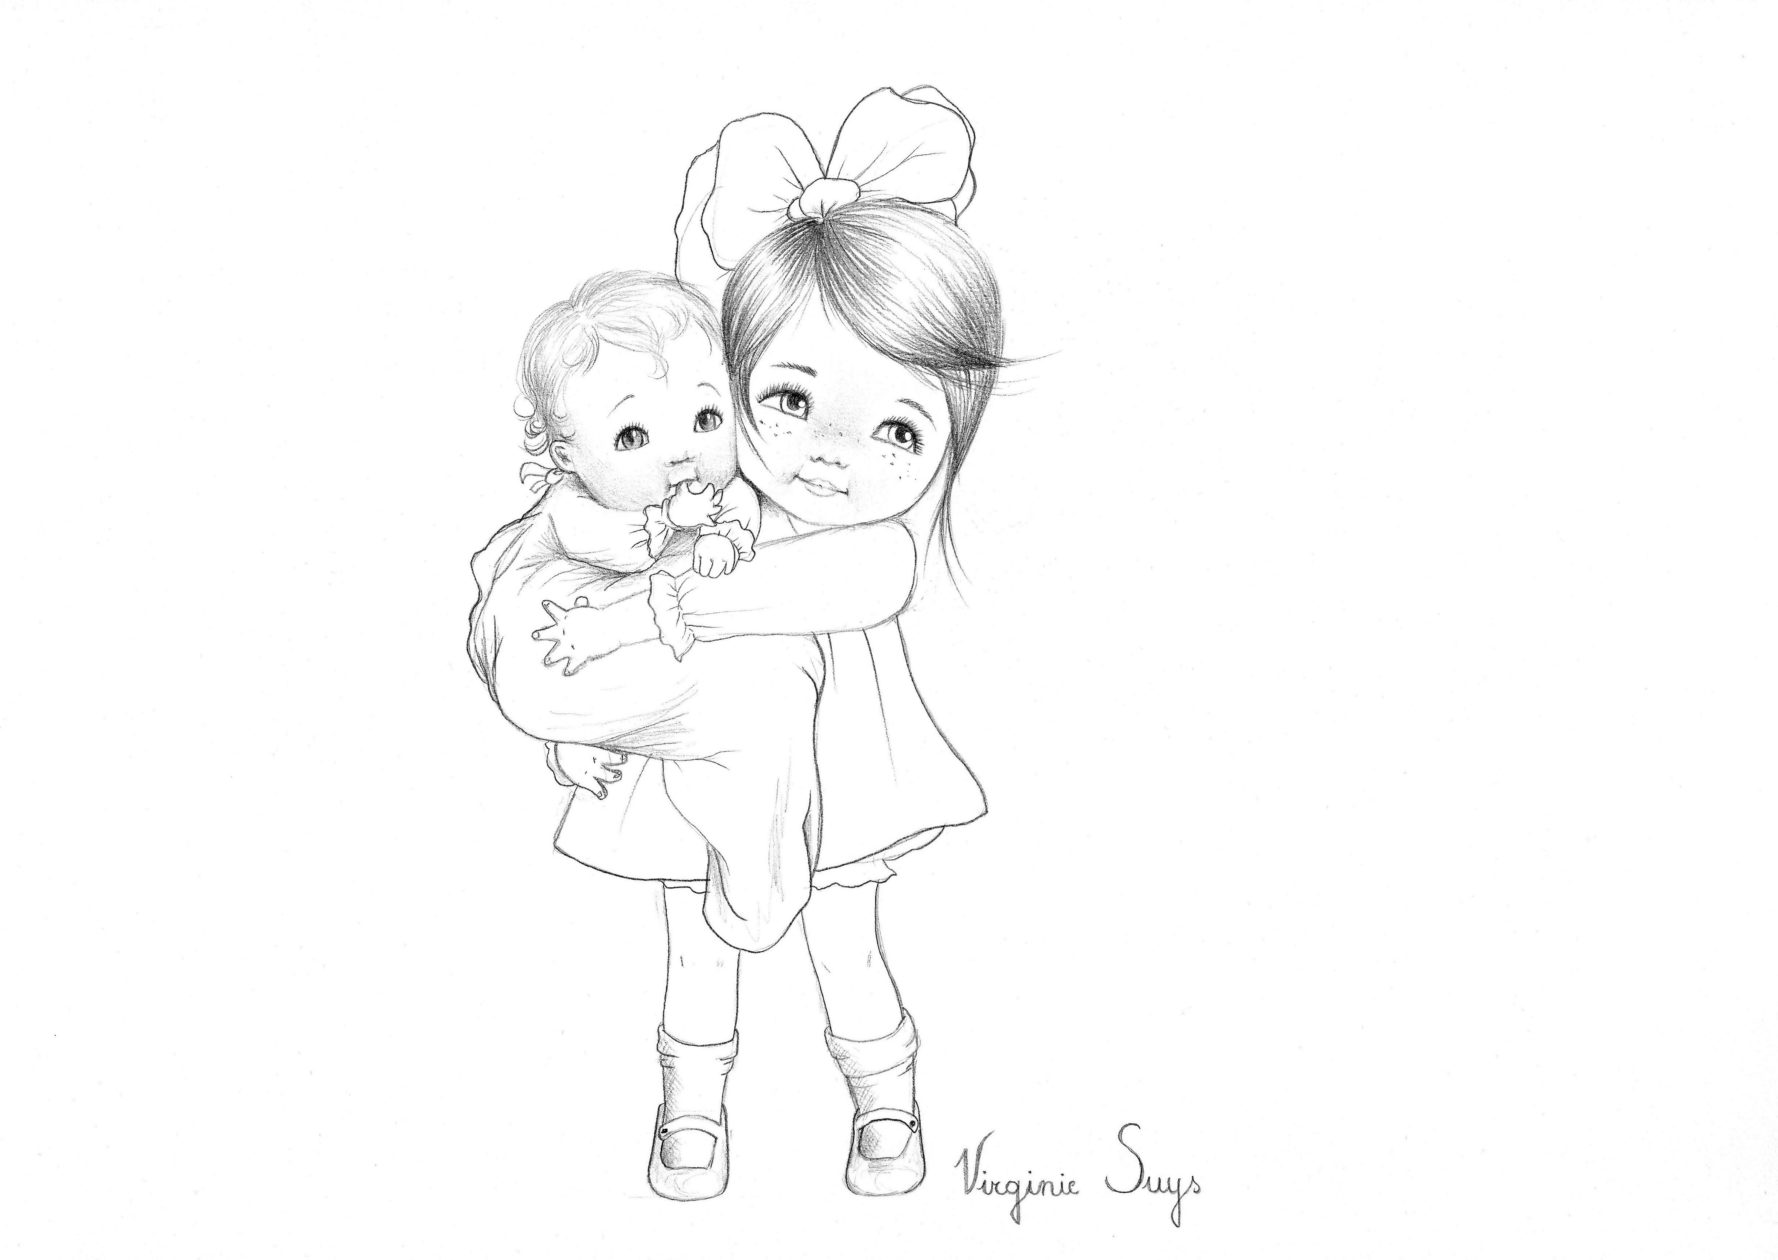 Virginie Suys Big sister with baby in black & white illustration